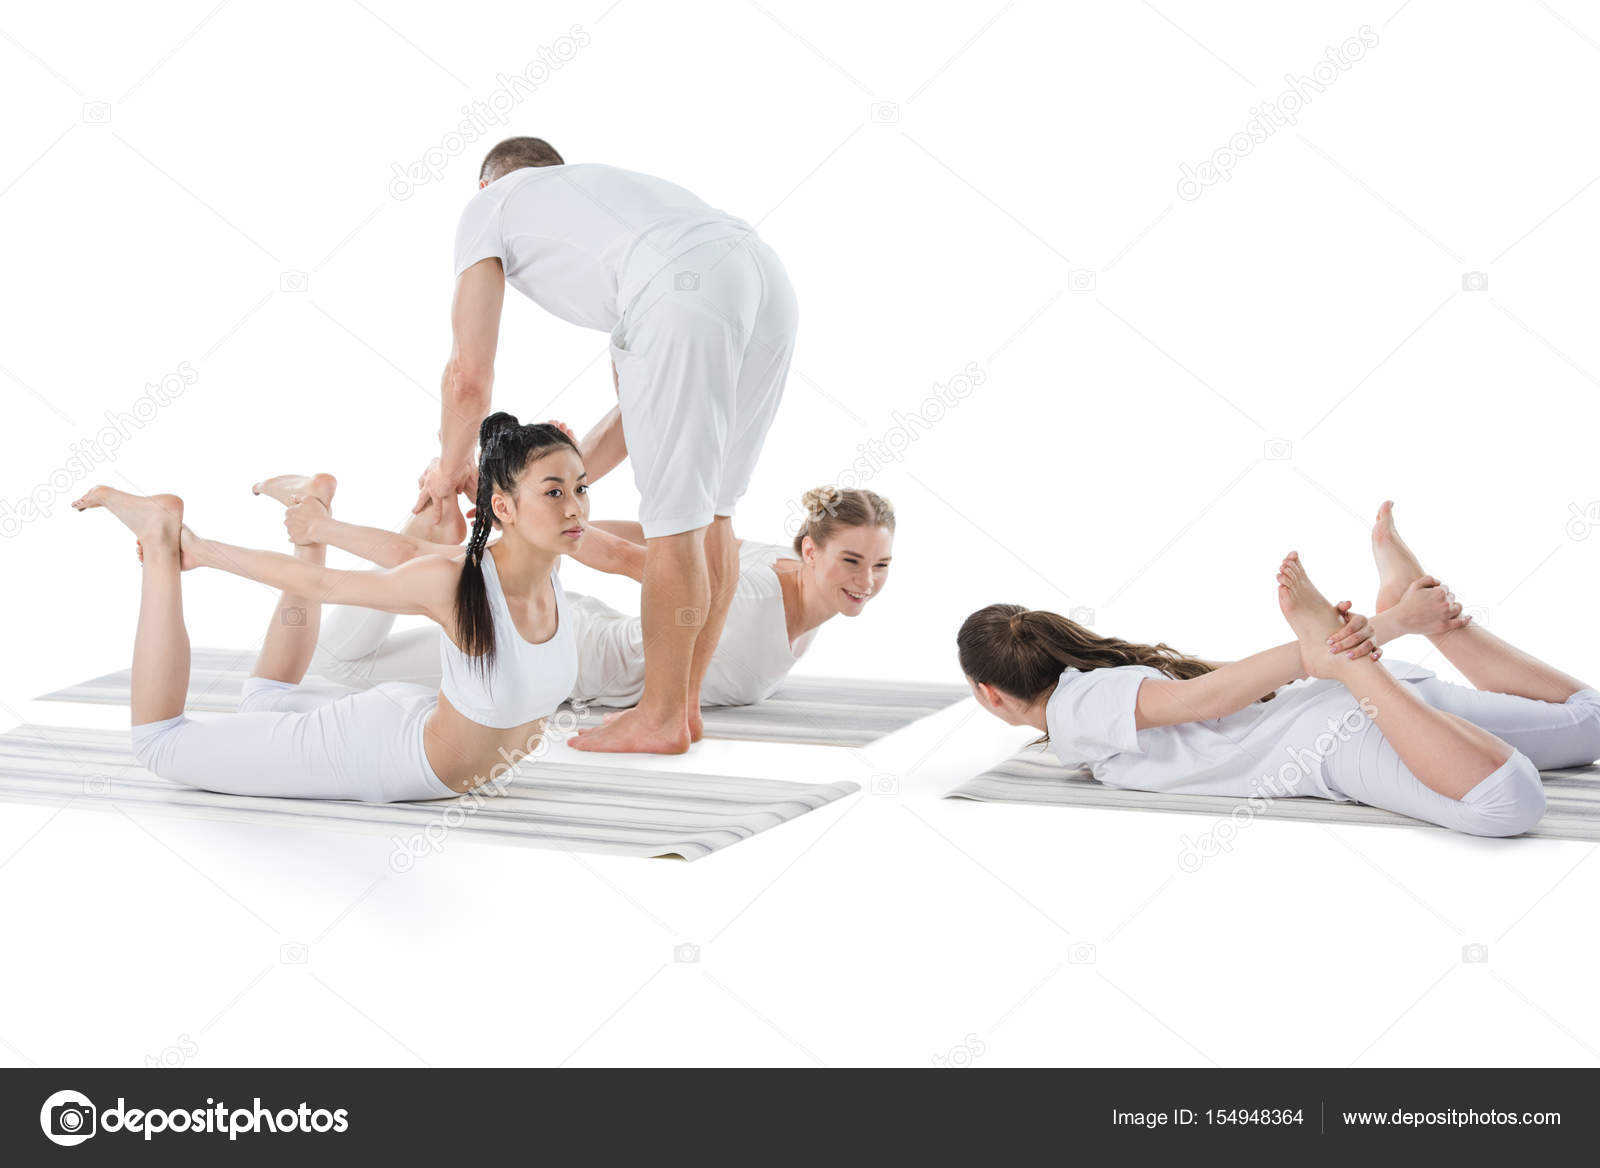 ᐈ Yoga frog stock images, Royalty Free frog pose photos